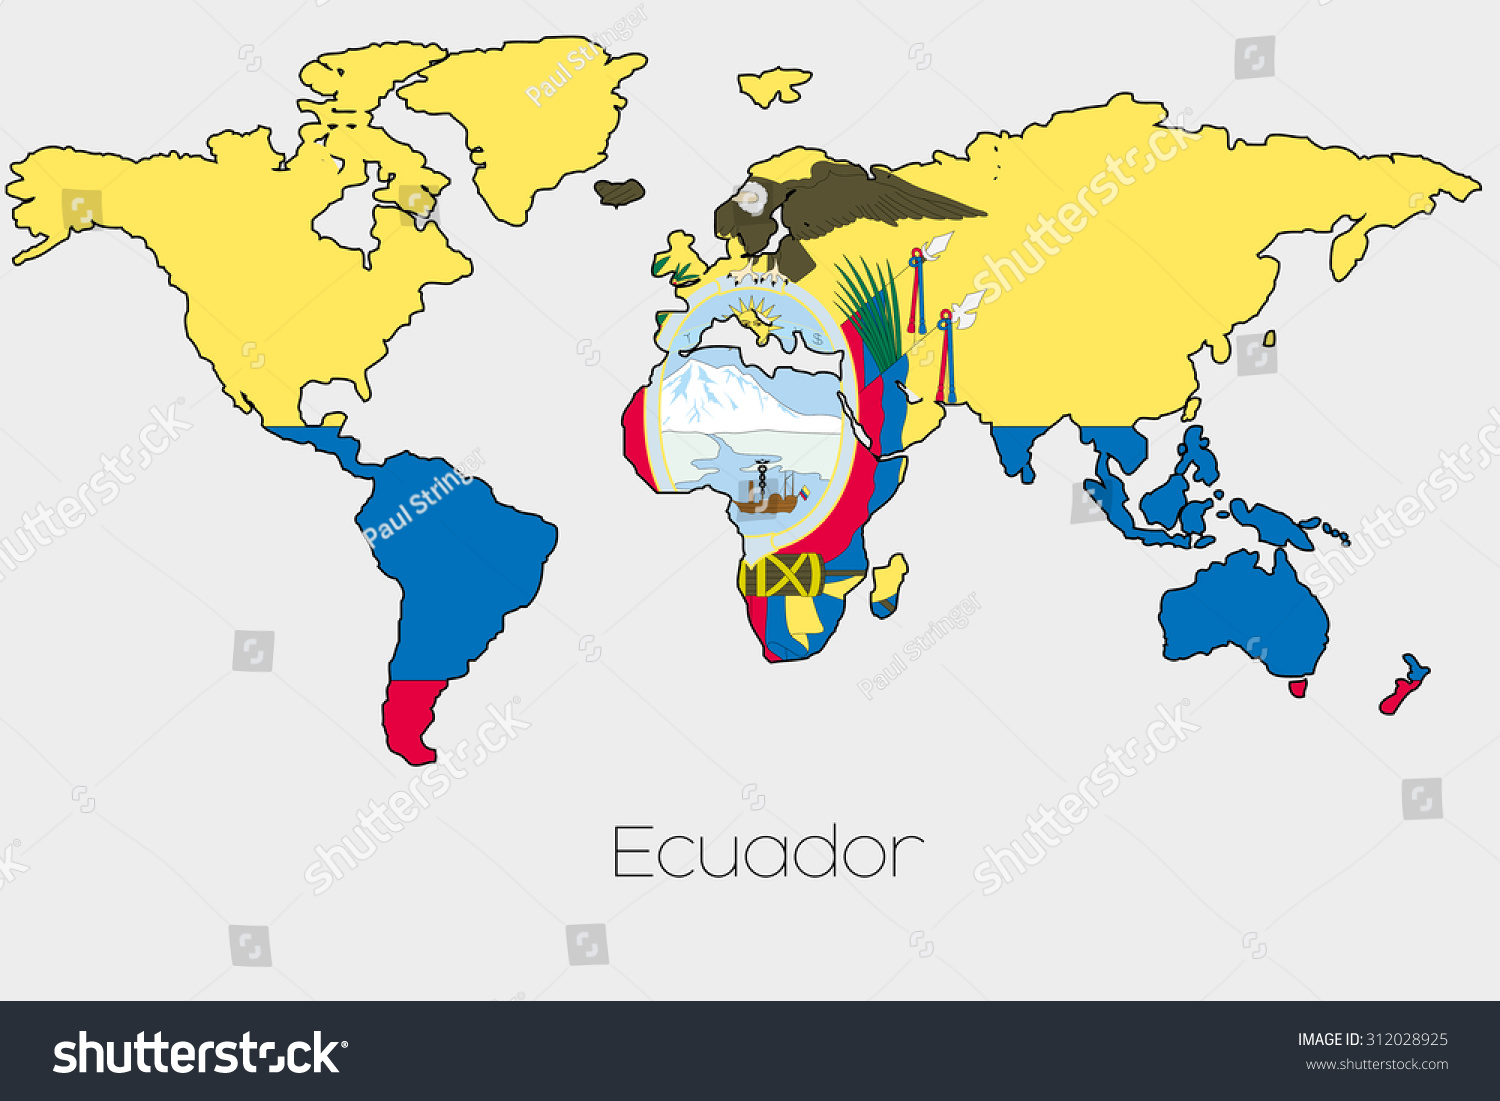 Flag Illustration Inside Shape World Map Stock Illustration - Map of ecuador world